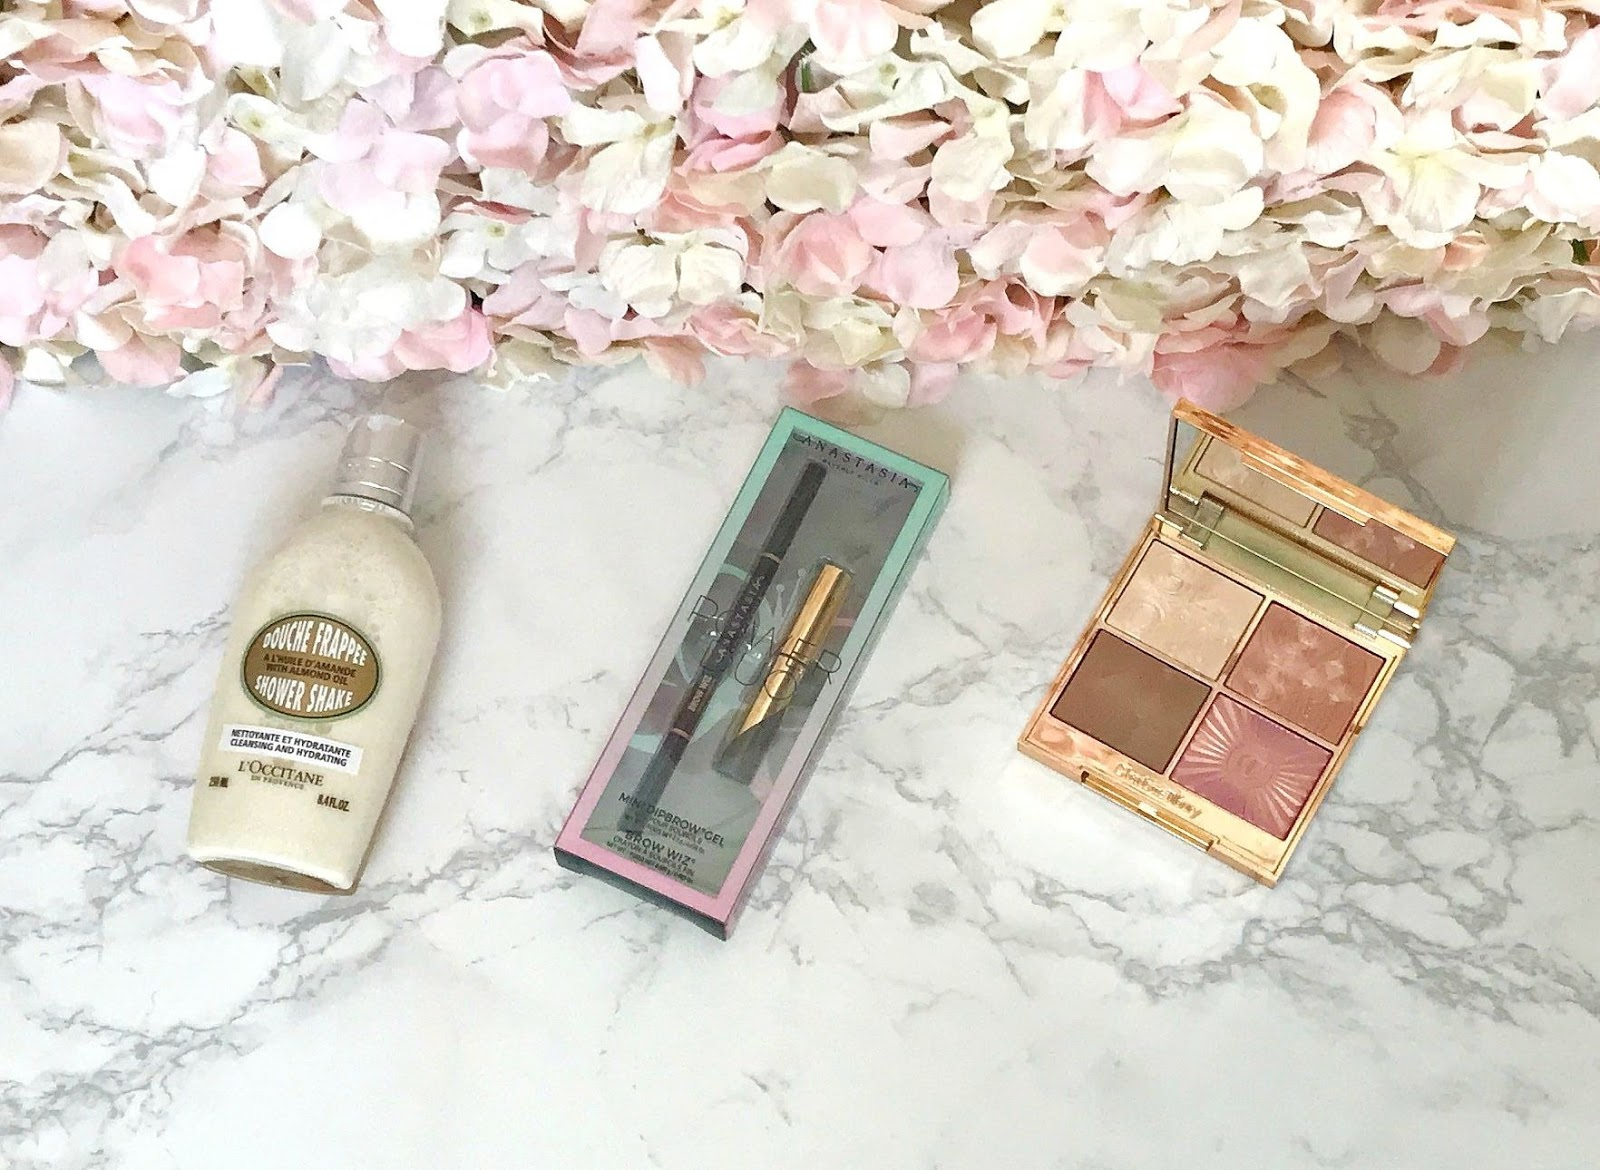 L'Occitane Almond Shower Shake, Anastasia Beverly Hills power Duo, Charlotte Tilbury Lightgasm